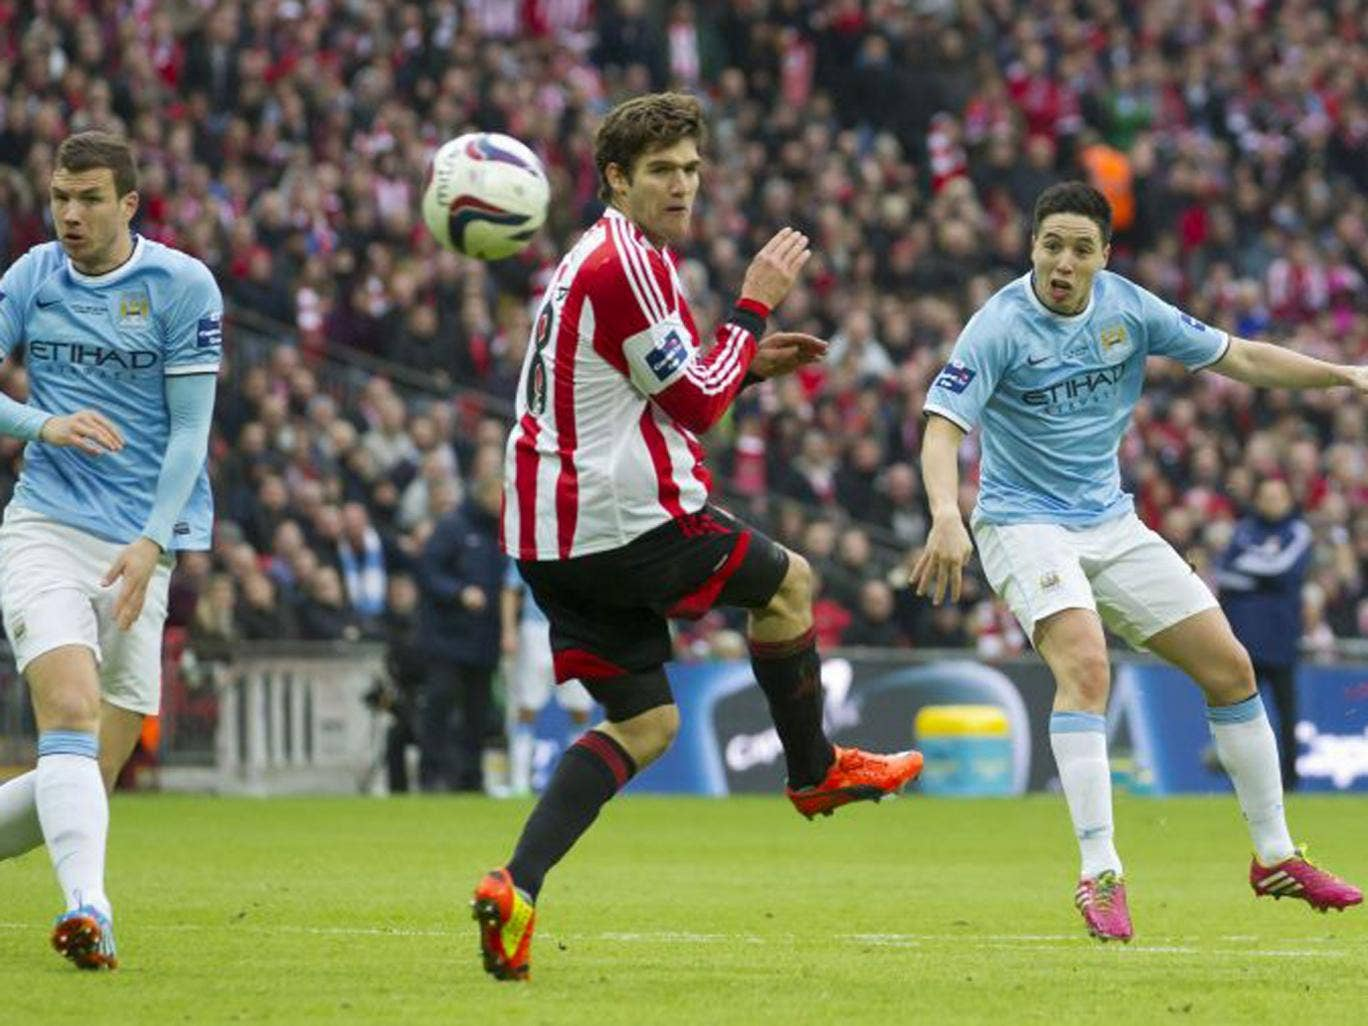 Samir Nasri lashes it in to put Manchester City 2-1 up